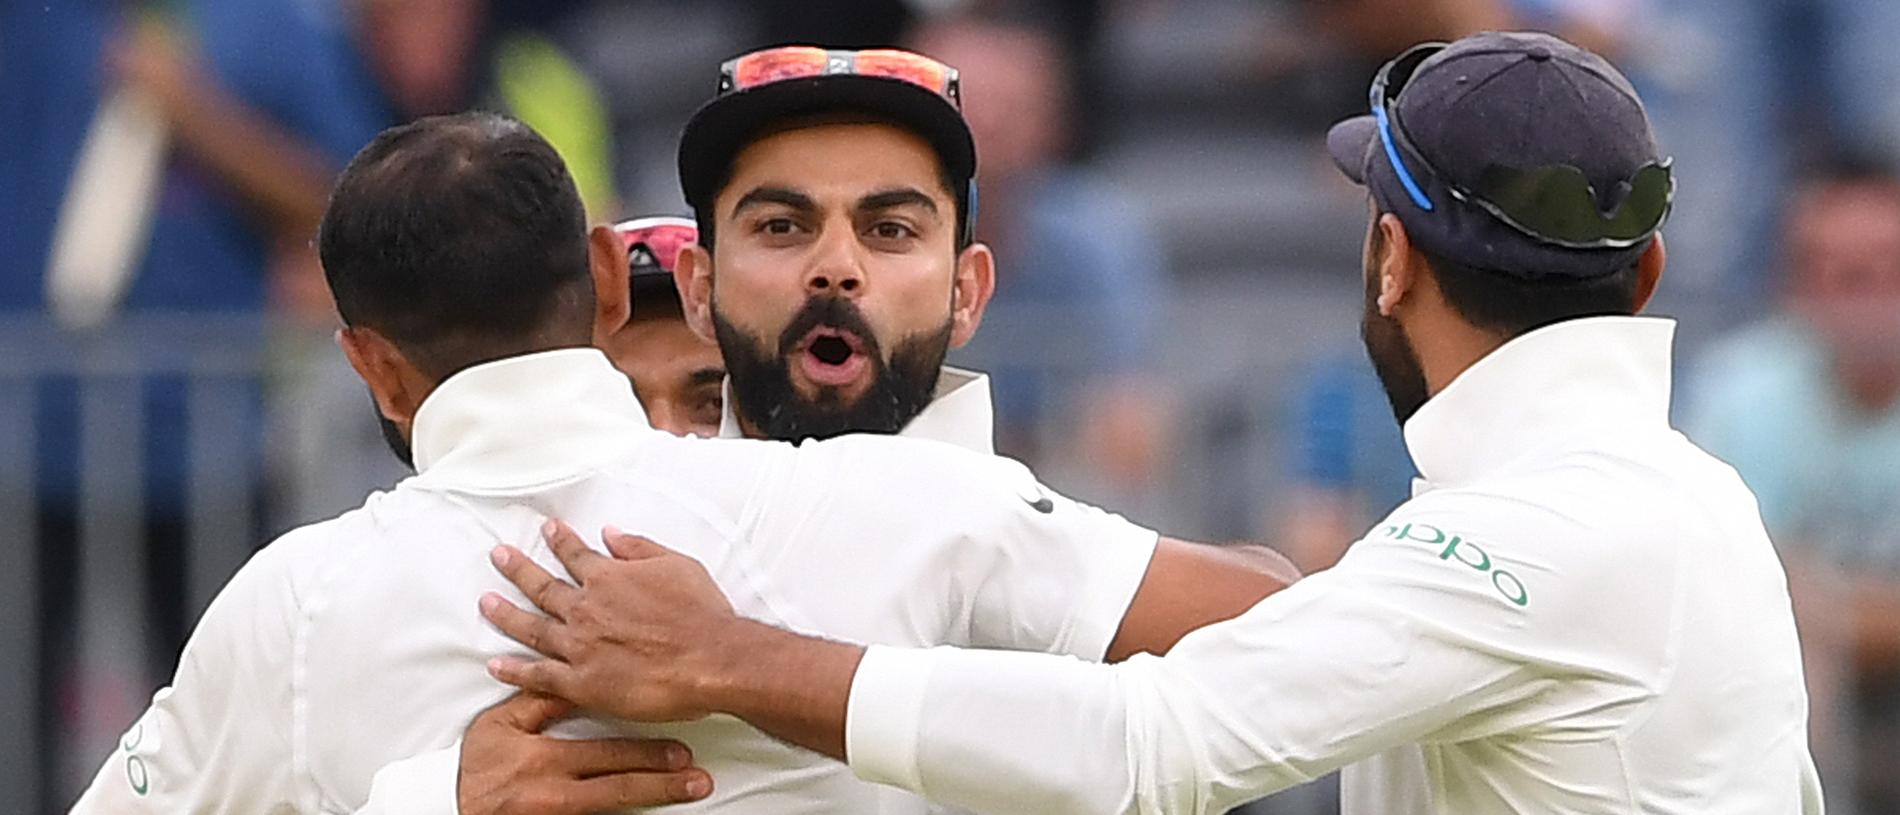 Indian captain Virat Kohli reacts after the dismissal of Australian batsman Travis Head  on day three of the second Test match between Australia and India at Perth Stadium in Perth, Sunday,  December 16,  2018.  (AAP Image/Dave Hunt) NO ARCHIVING, EDITORIAL USE ONLY, IMAGES TO BE USED FOR NEWS REPORTING PURPOSES ONLY, NO COMMERCIAL USE WHATSOEVER, NO USE IN BOOKS WITHOUT PRIOR WRITTEN CONSENT FROM AAP